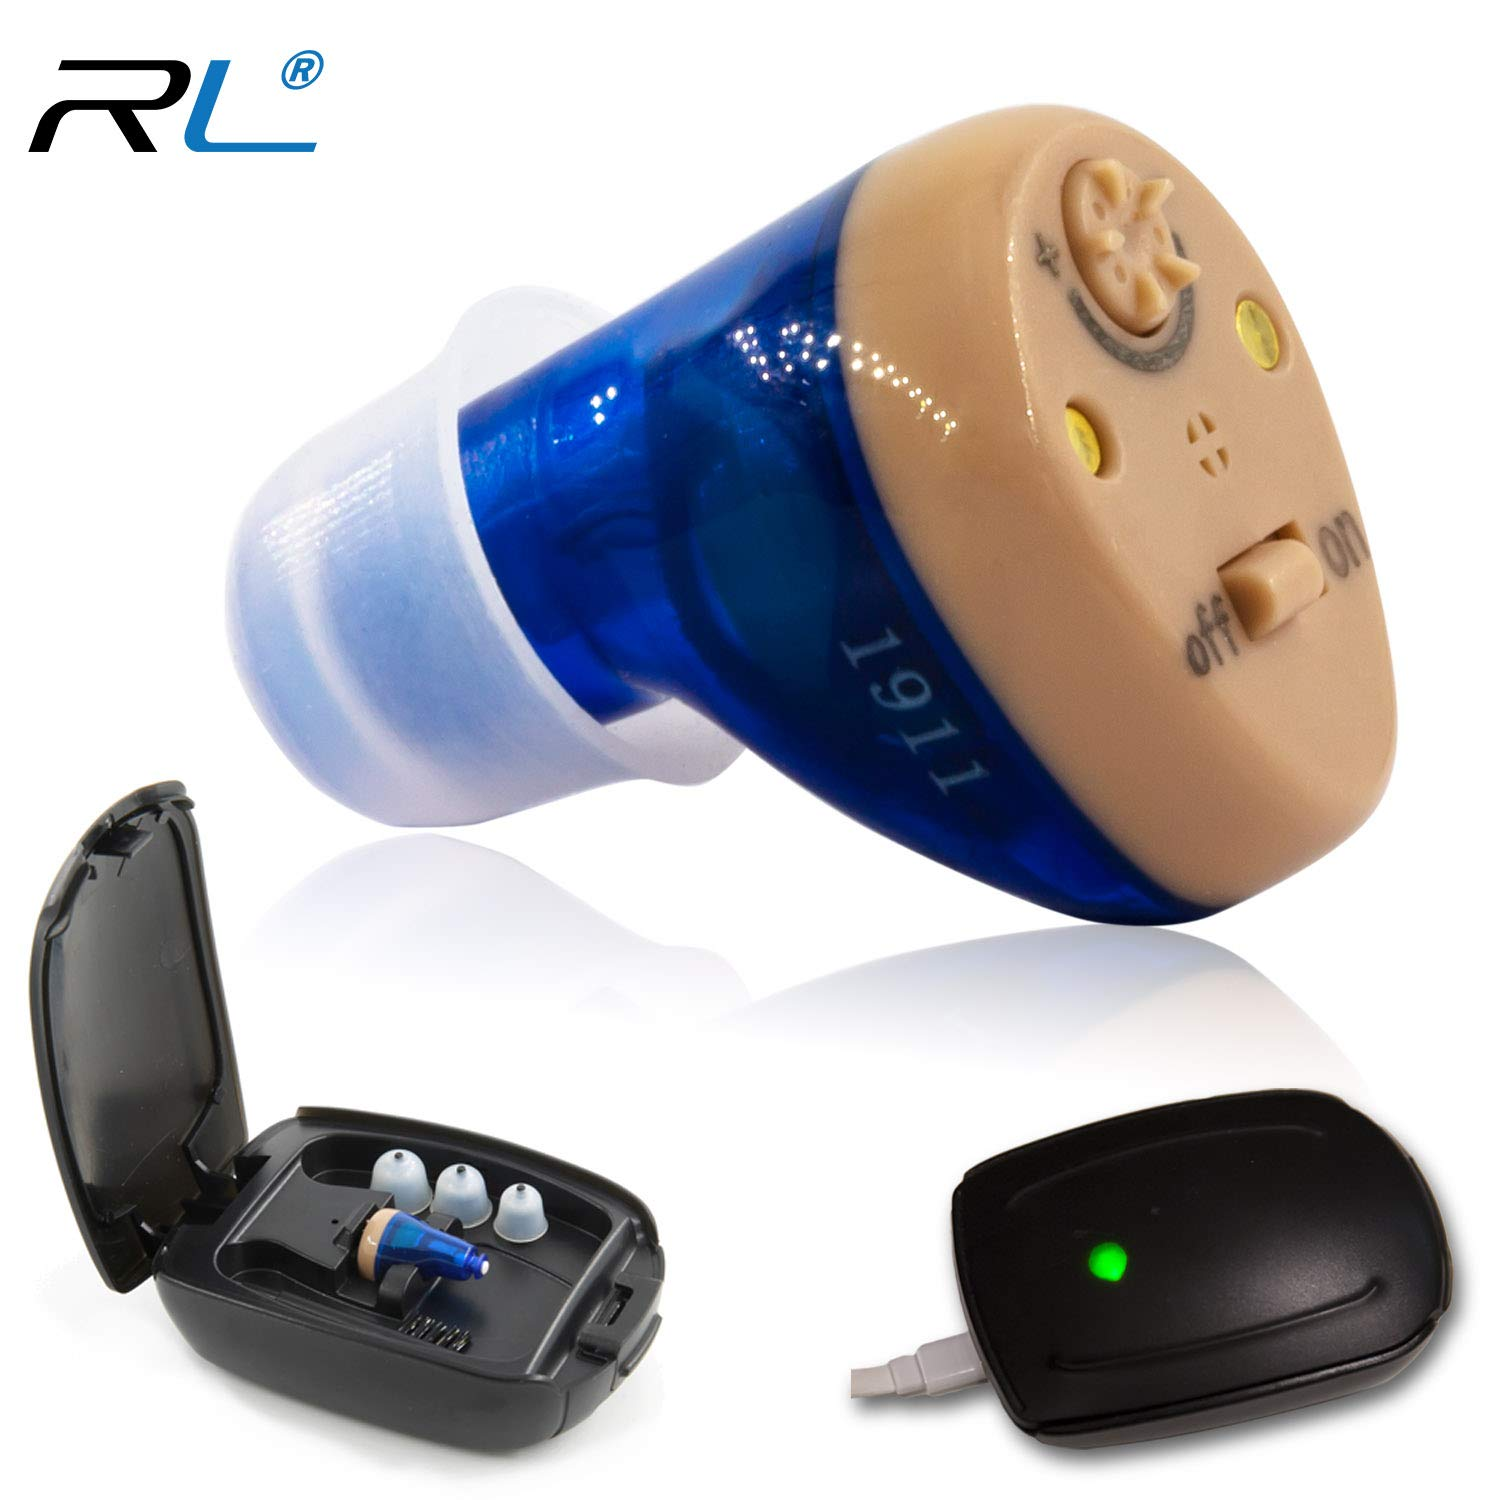 R&L Rechargeable Hearing Amplifier C100 to Aid and Assist Hearing for Adults and Seniors, Digital CIC ITE ITC Style Rechargable Device with Feedback Cancellation, Fit Both Ears by R&L